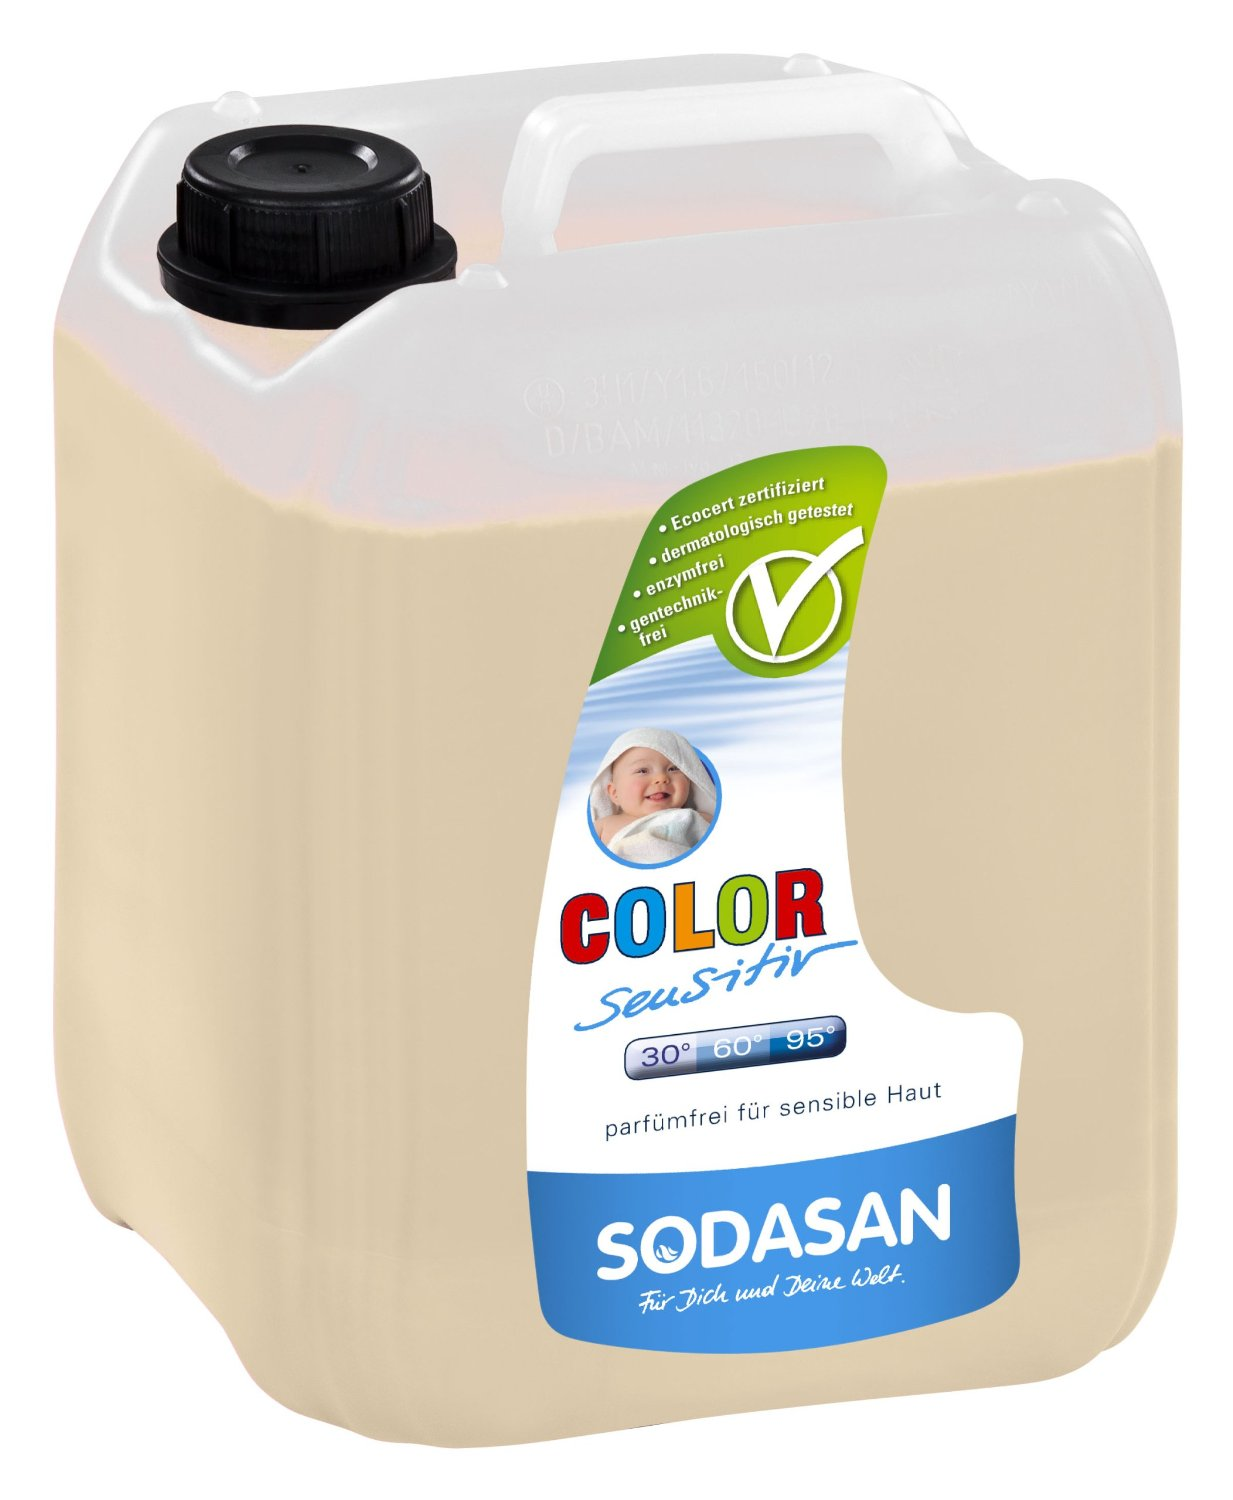 Color-sensitiv geel Sodasan, 5 l